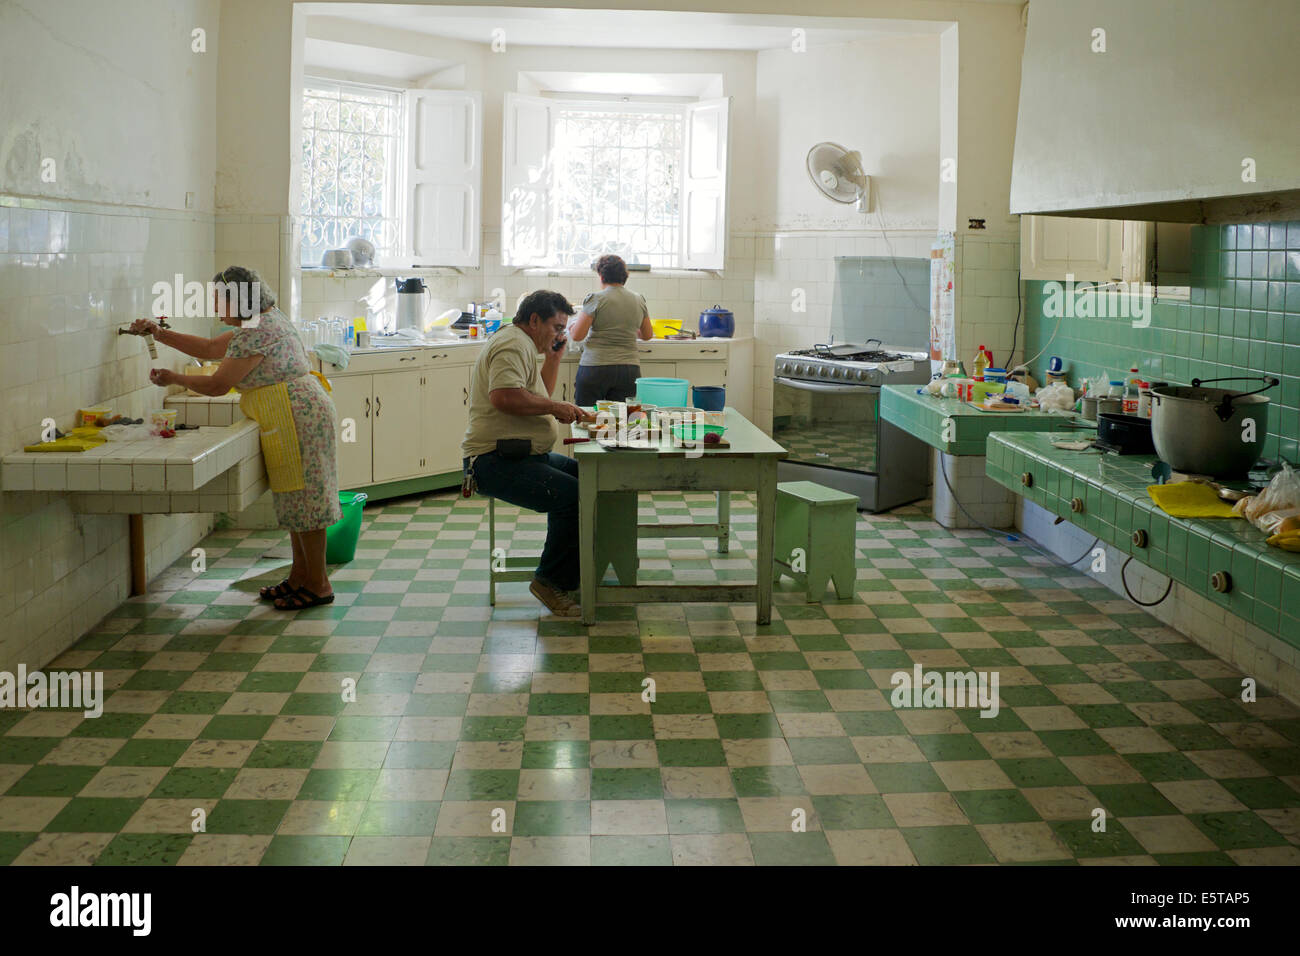 1920s Kitchen Stock Photos & 1920s Kitchen Stock Images - Alamy on 1920s houses bath, 1920s houses renovations, modern houses kitchen, 1920s houses furniture,